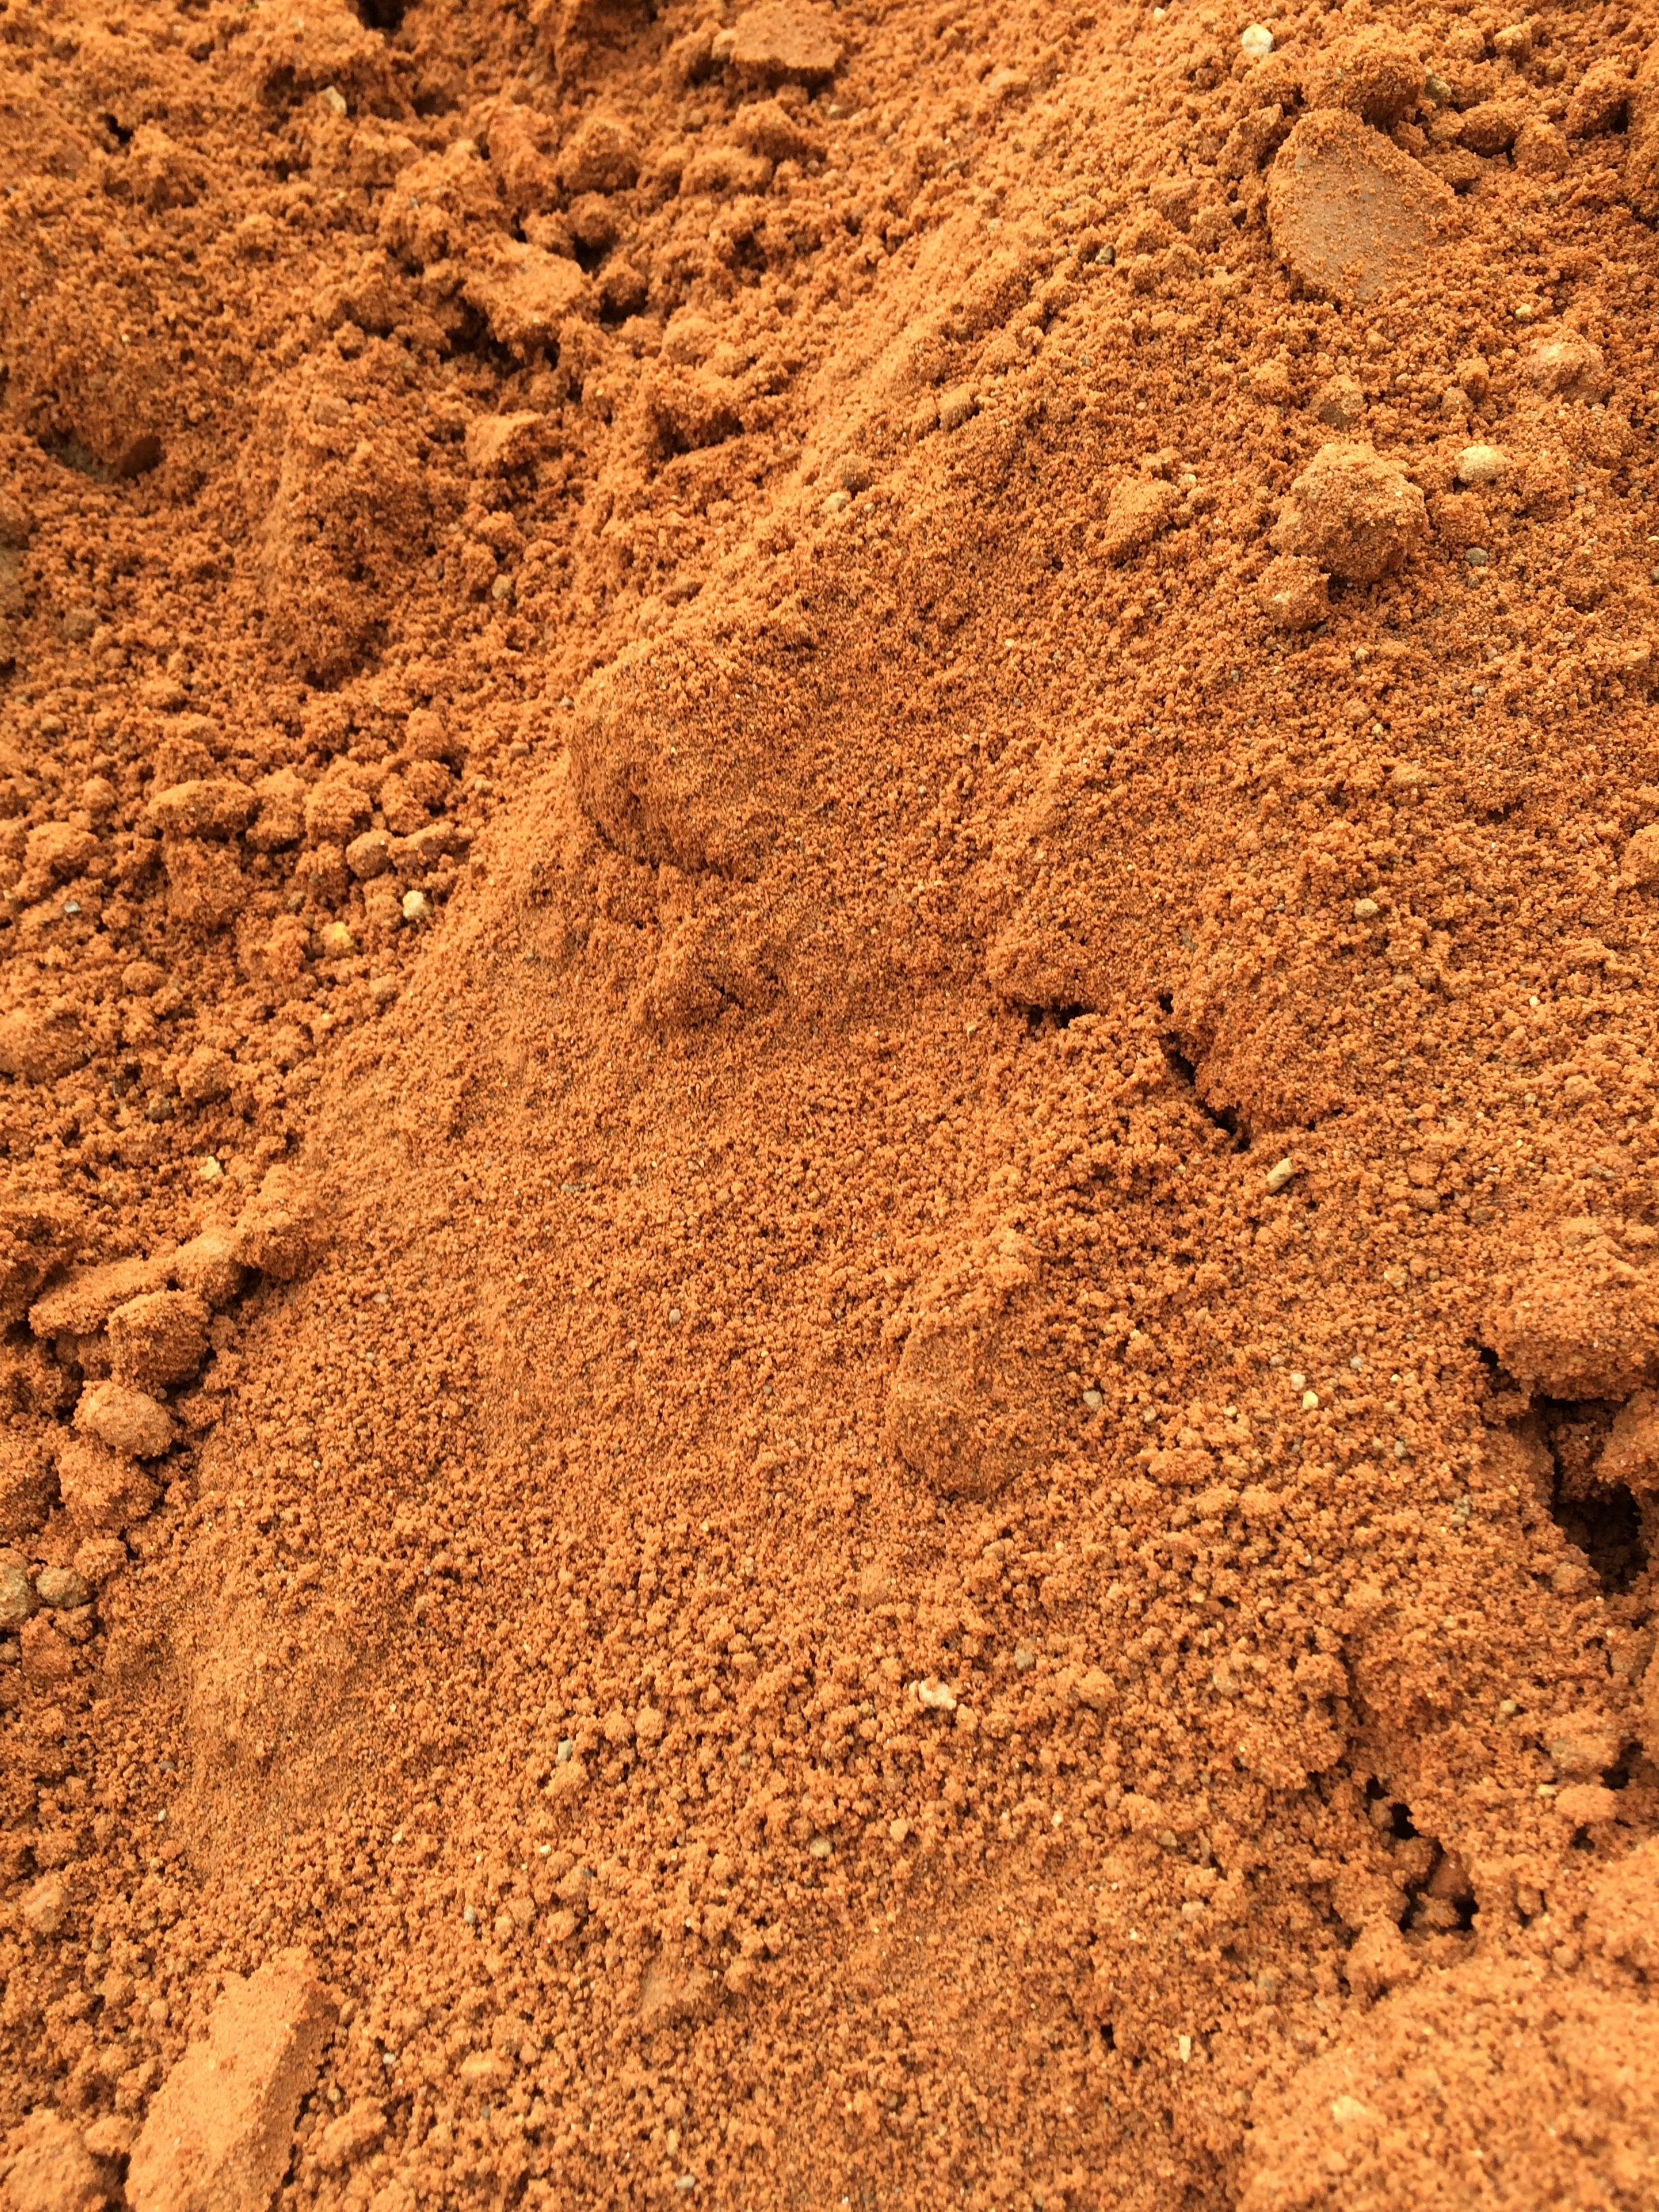 Specially engineered soil is the starting point for high performance earthen buildings